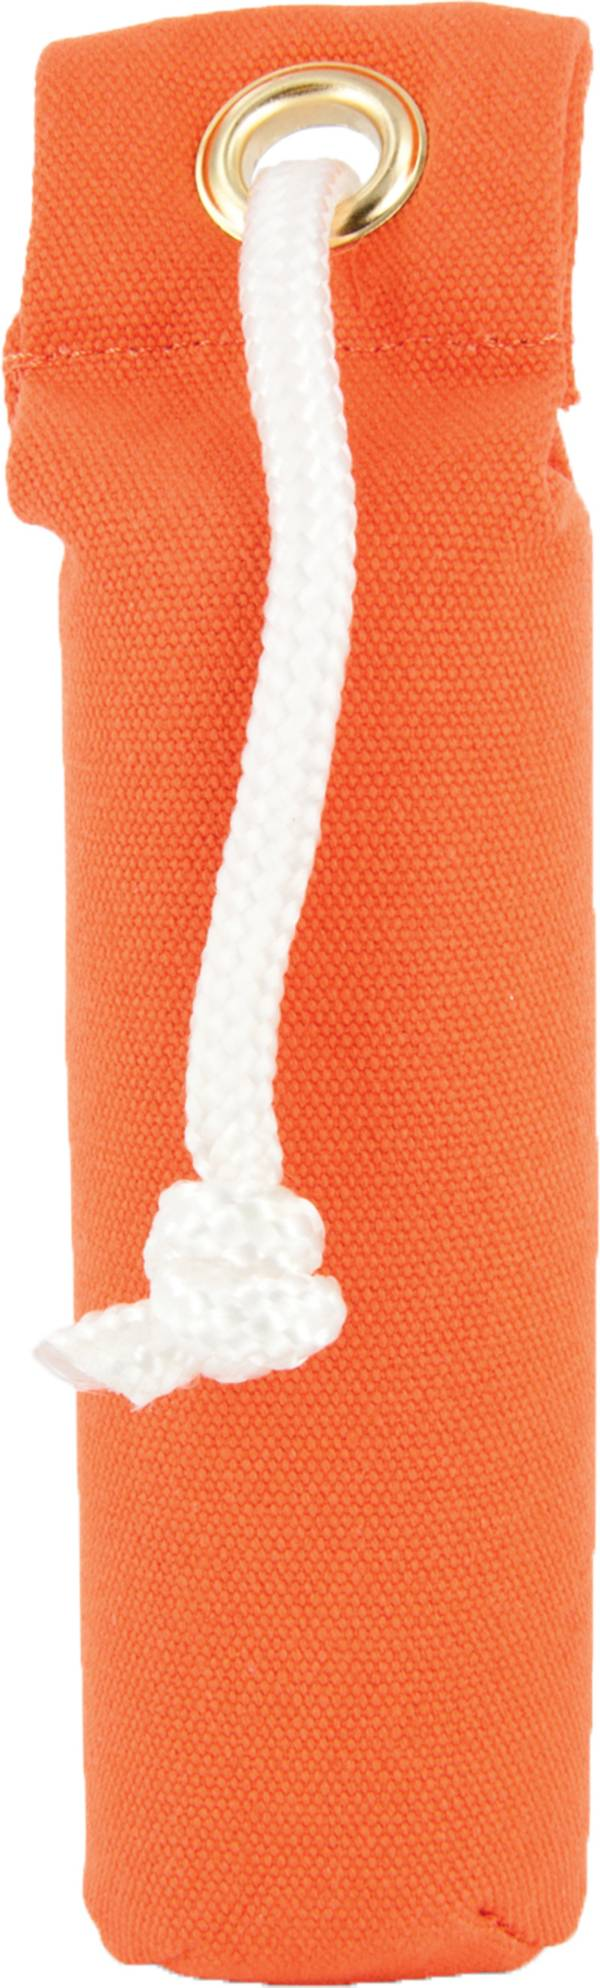 SportDOG Brand Canvas Puppy Training Dummy product image